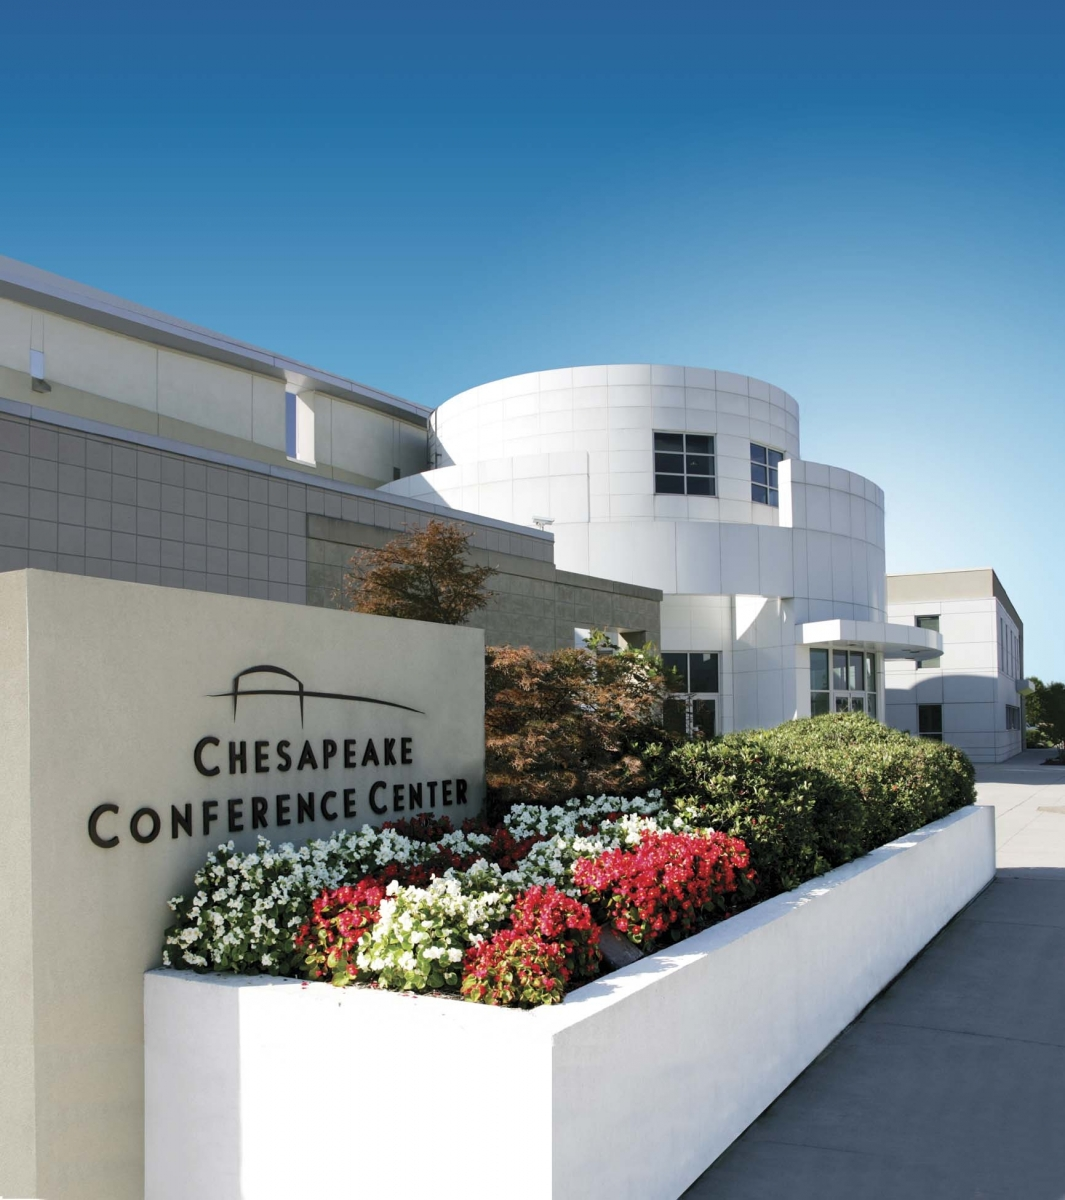 Chesapeake Conference Center